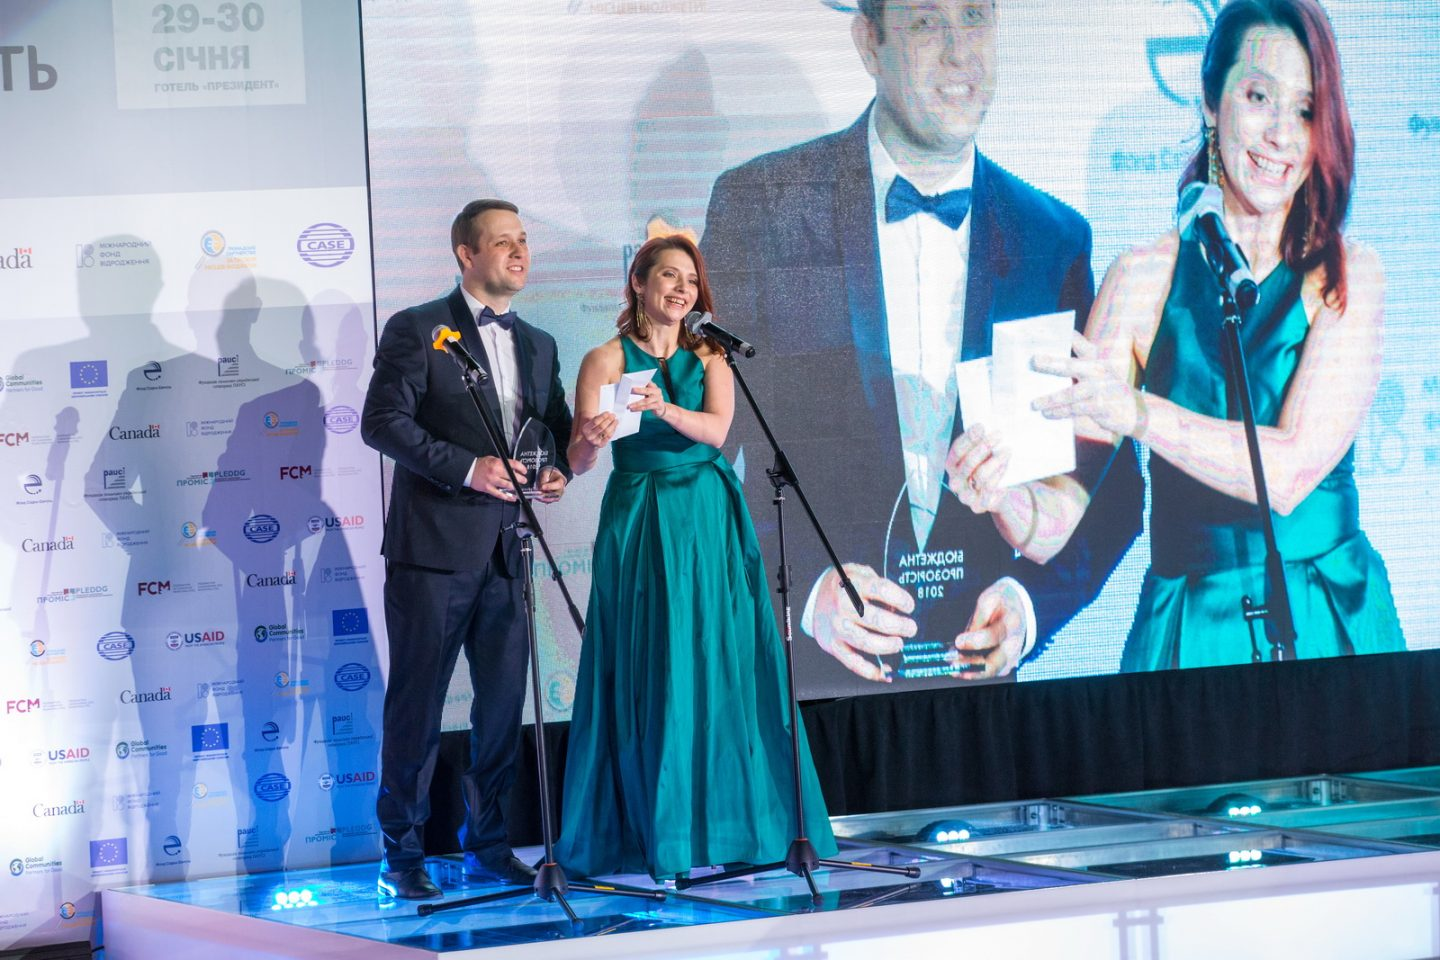 Drohobych and Bashtanska AH became the winners of the Crystal of the Year budget transparency rating